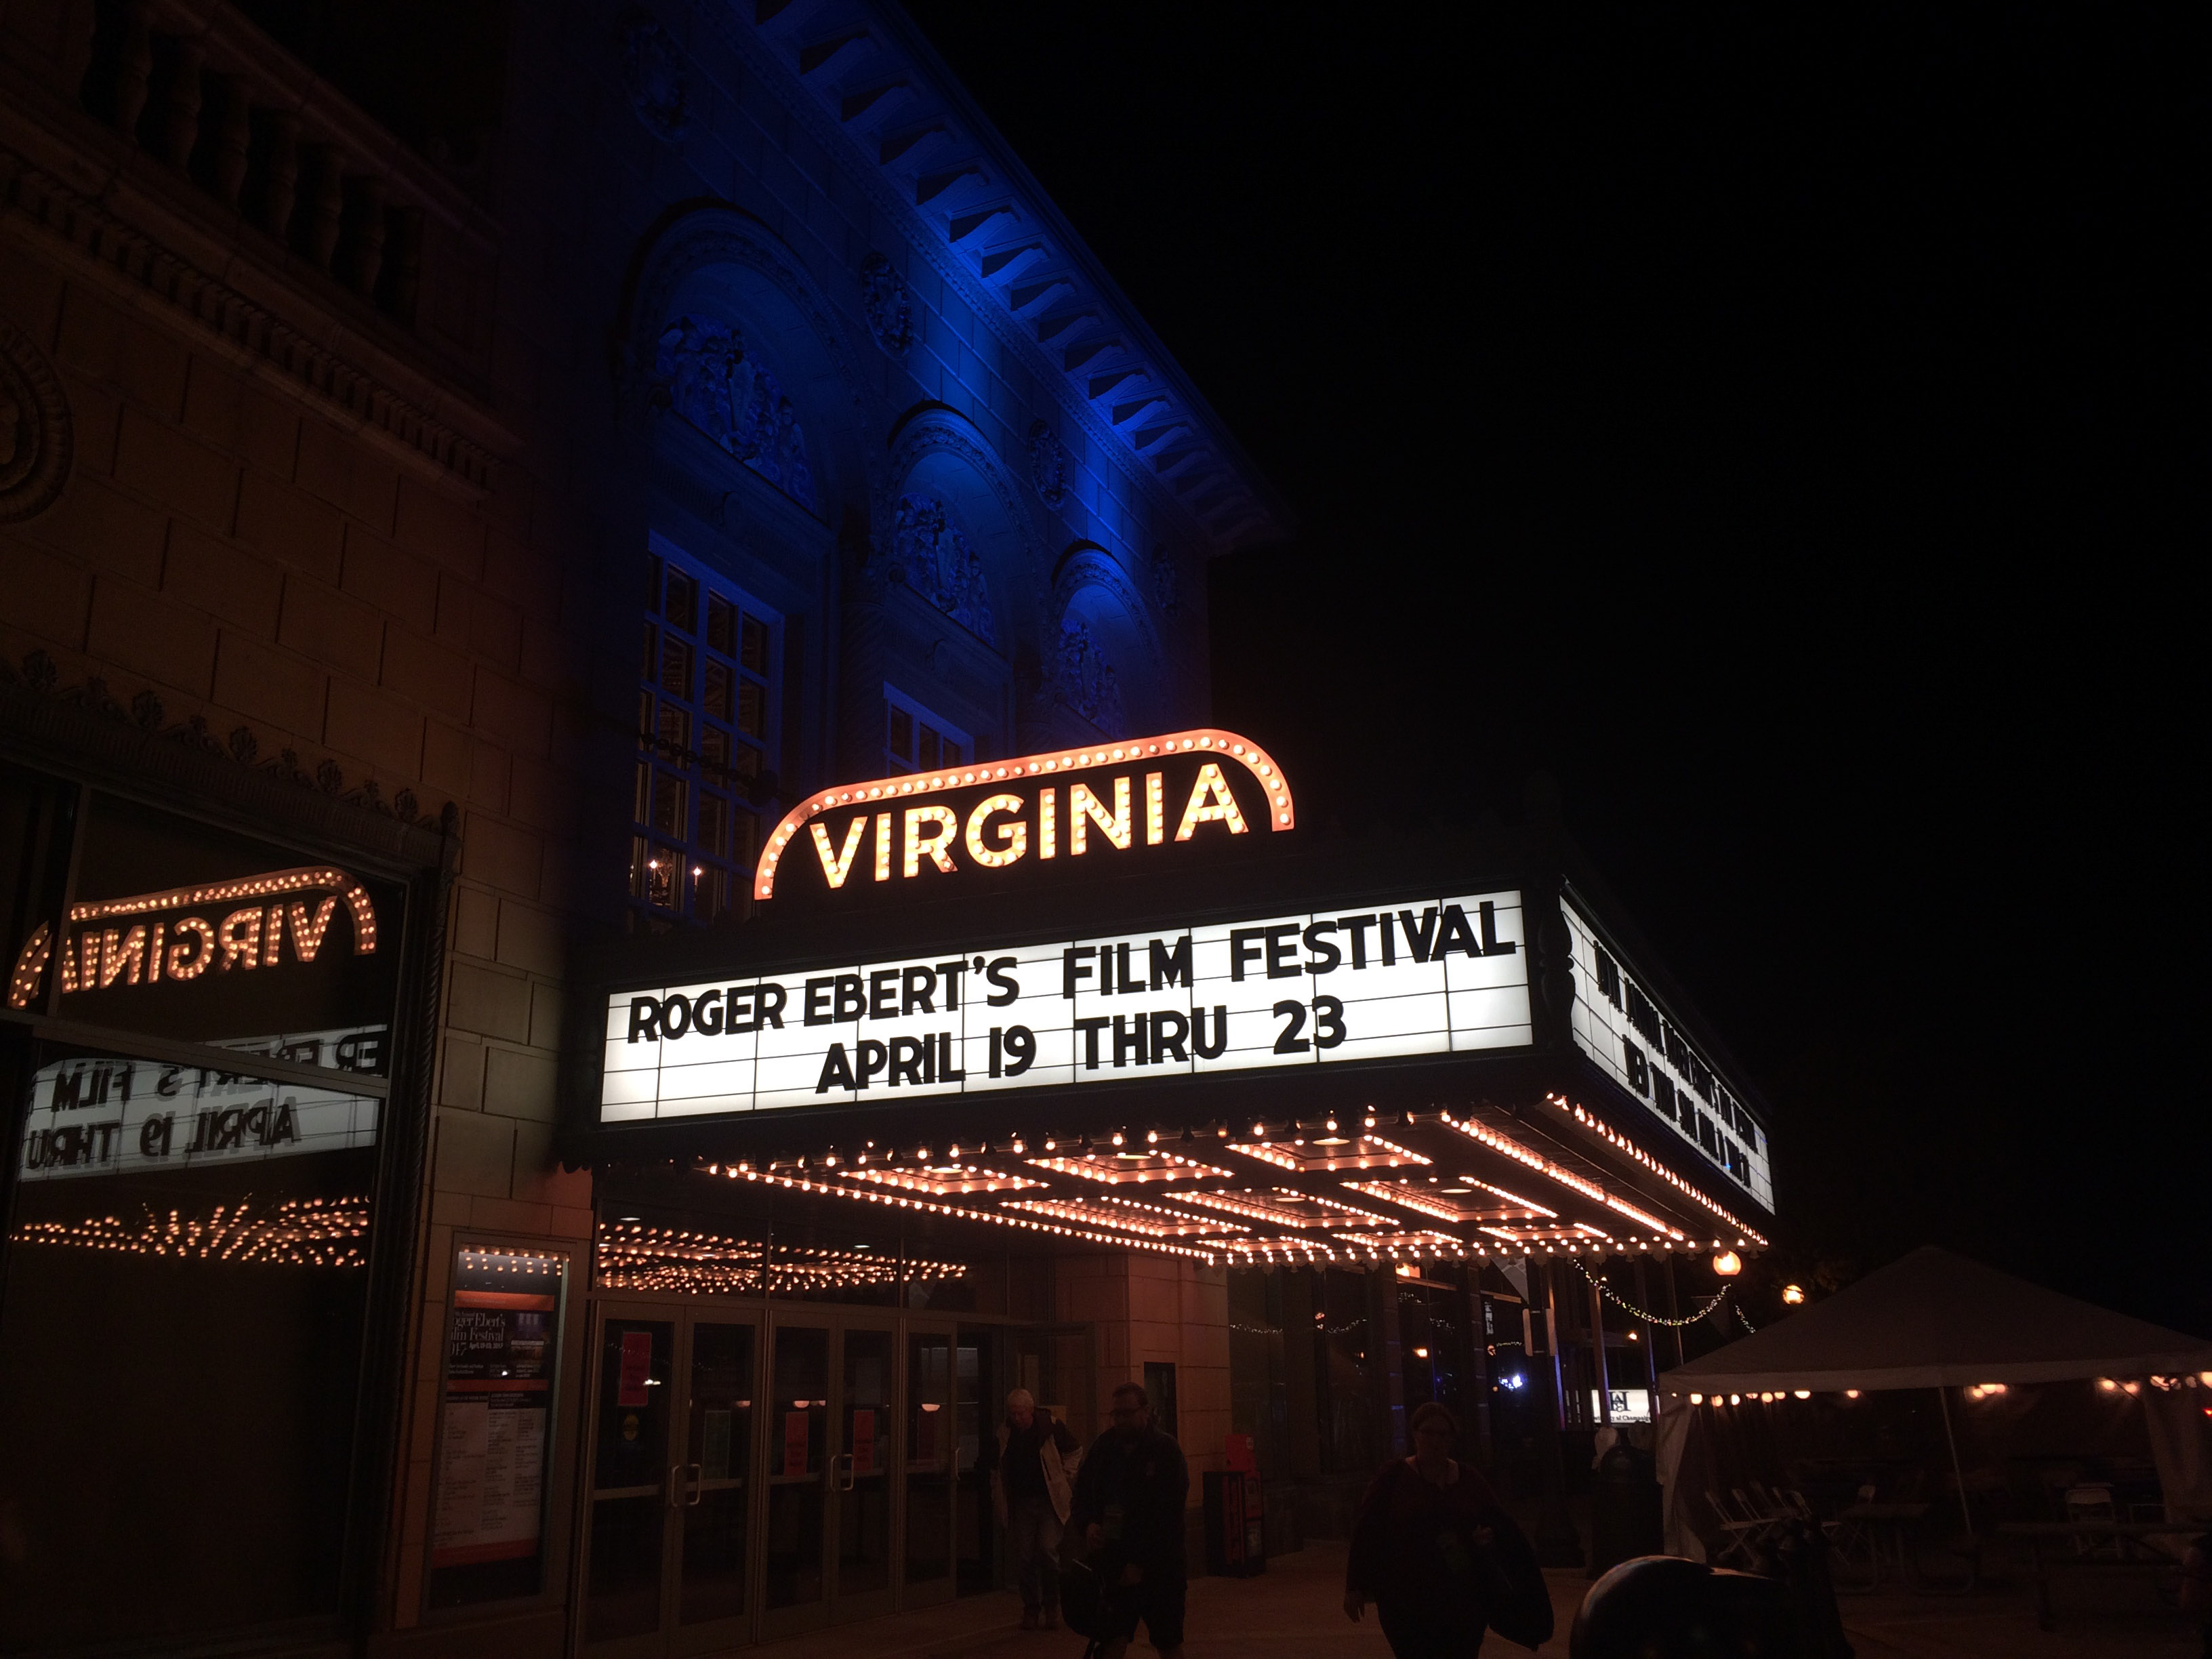 Outside the Virginia Theater on Friday, April 21. The 19th annual Roger Ebert Film Festival runs from April 19 - 23.